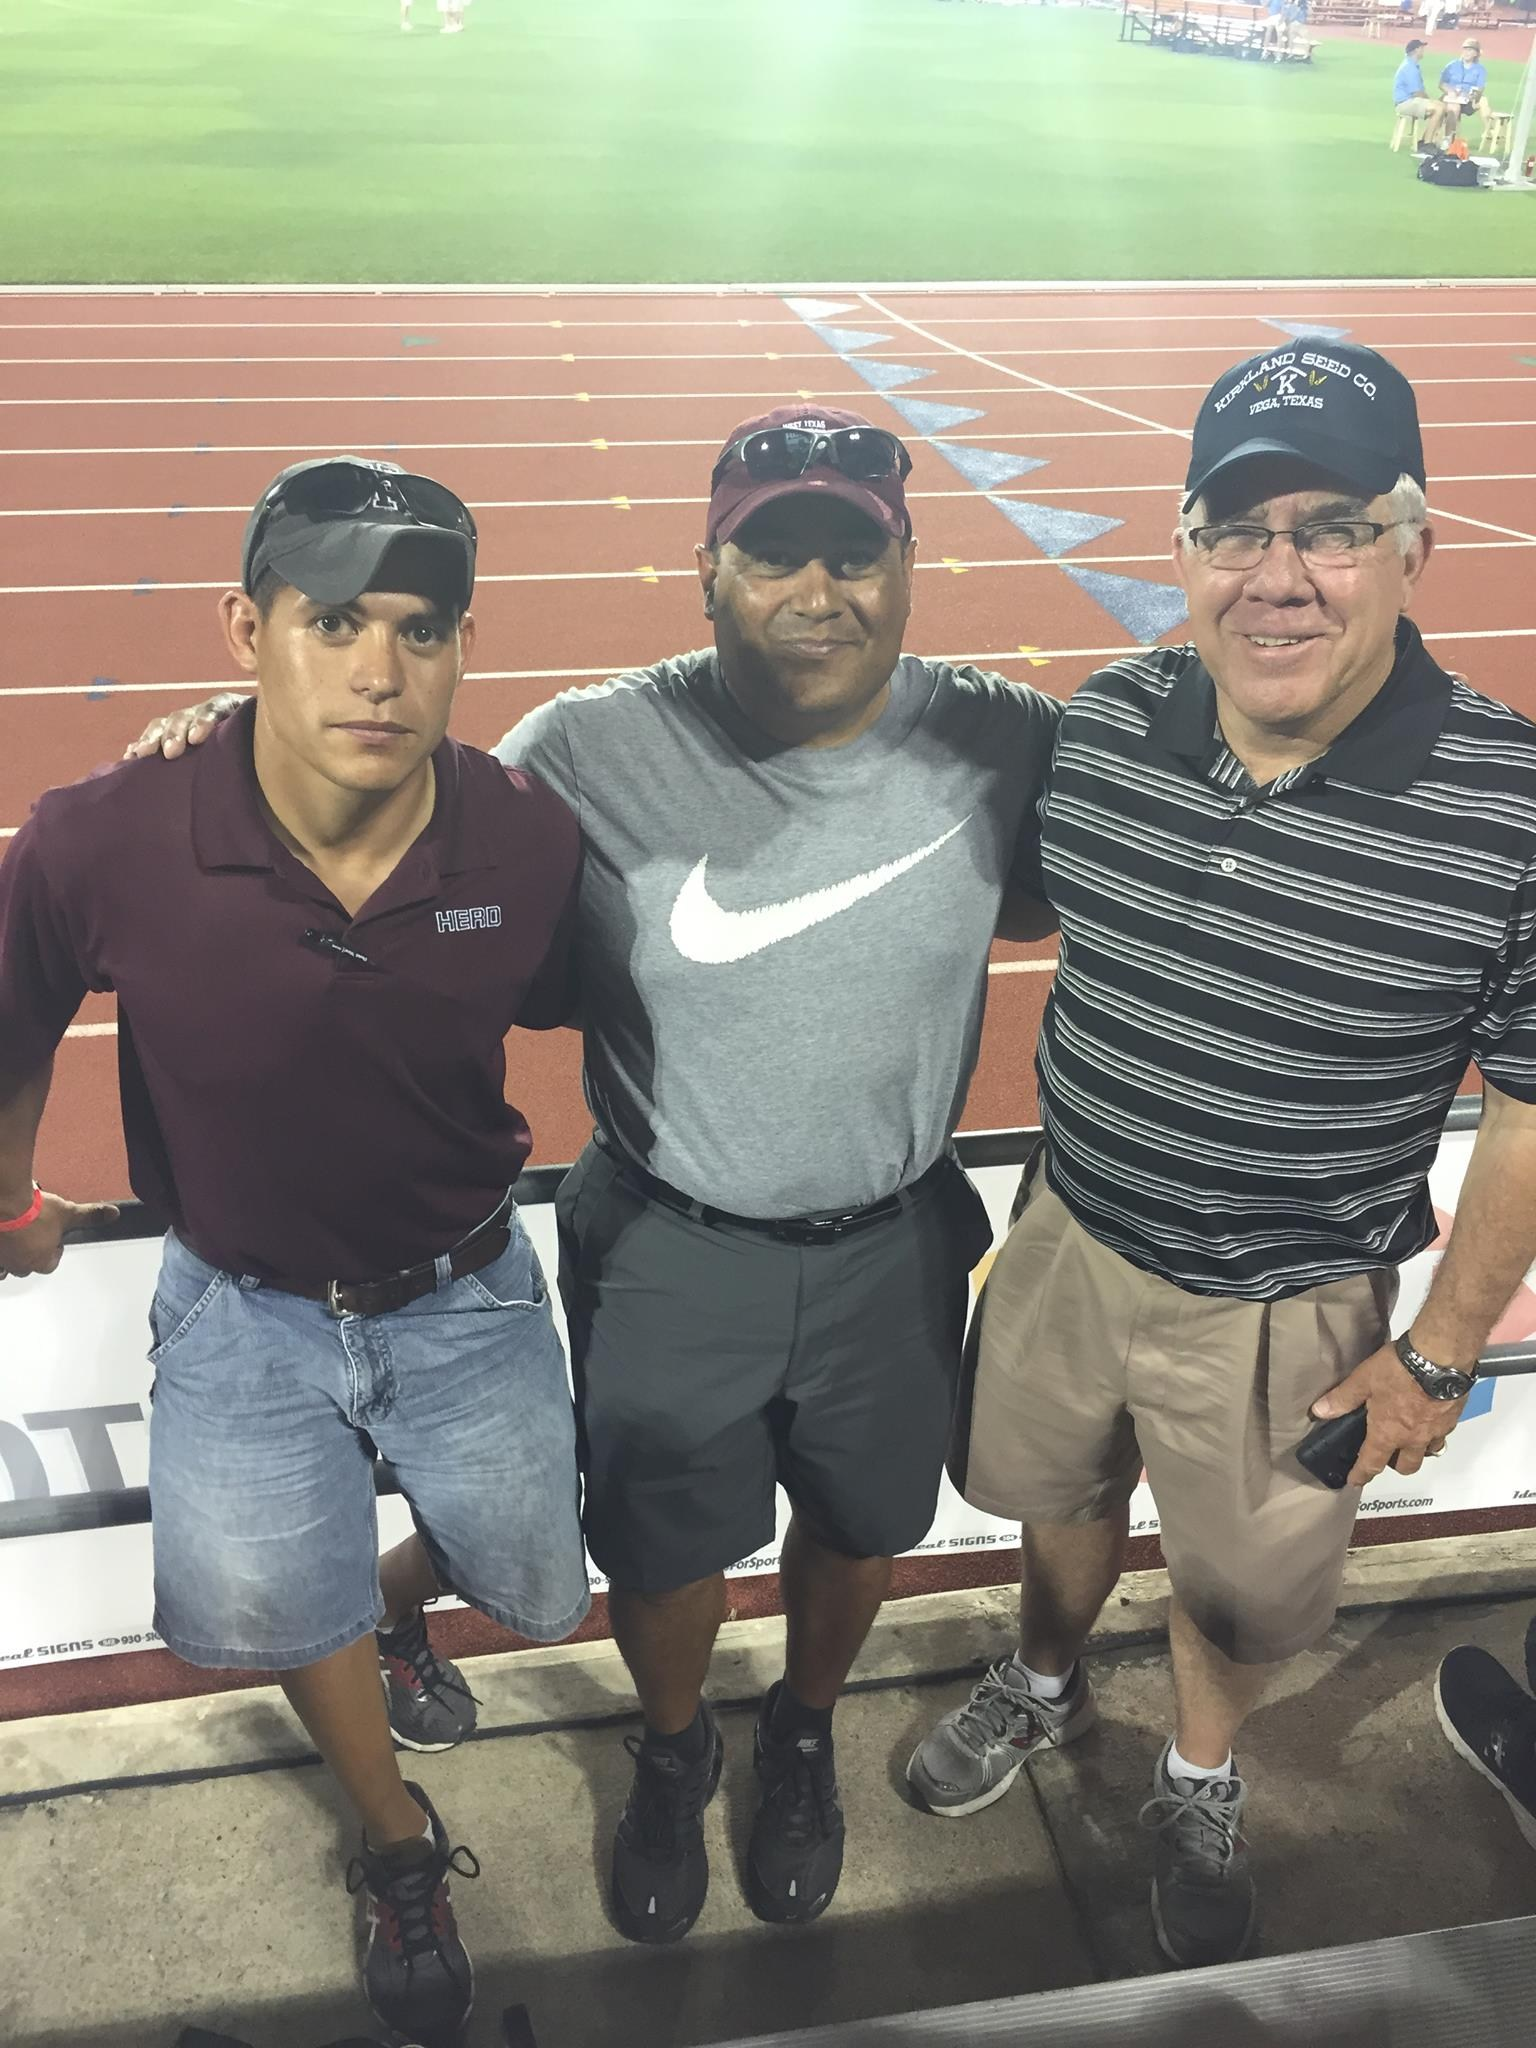 3 Generations of Hereford Track Coaches